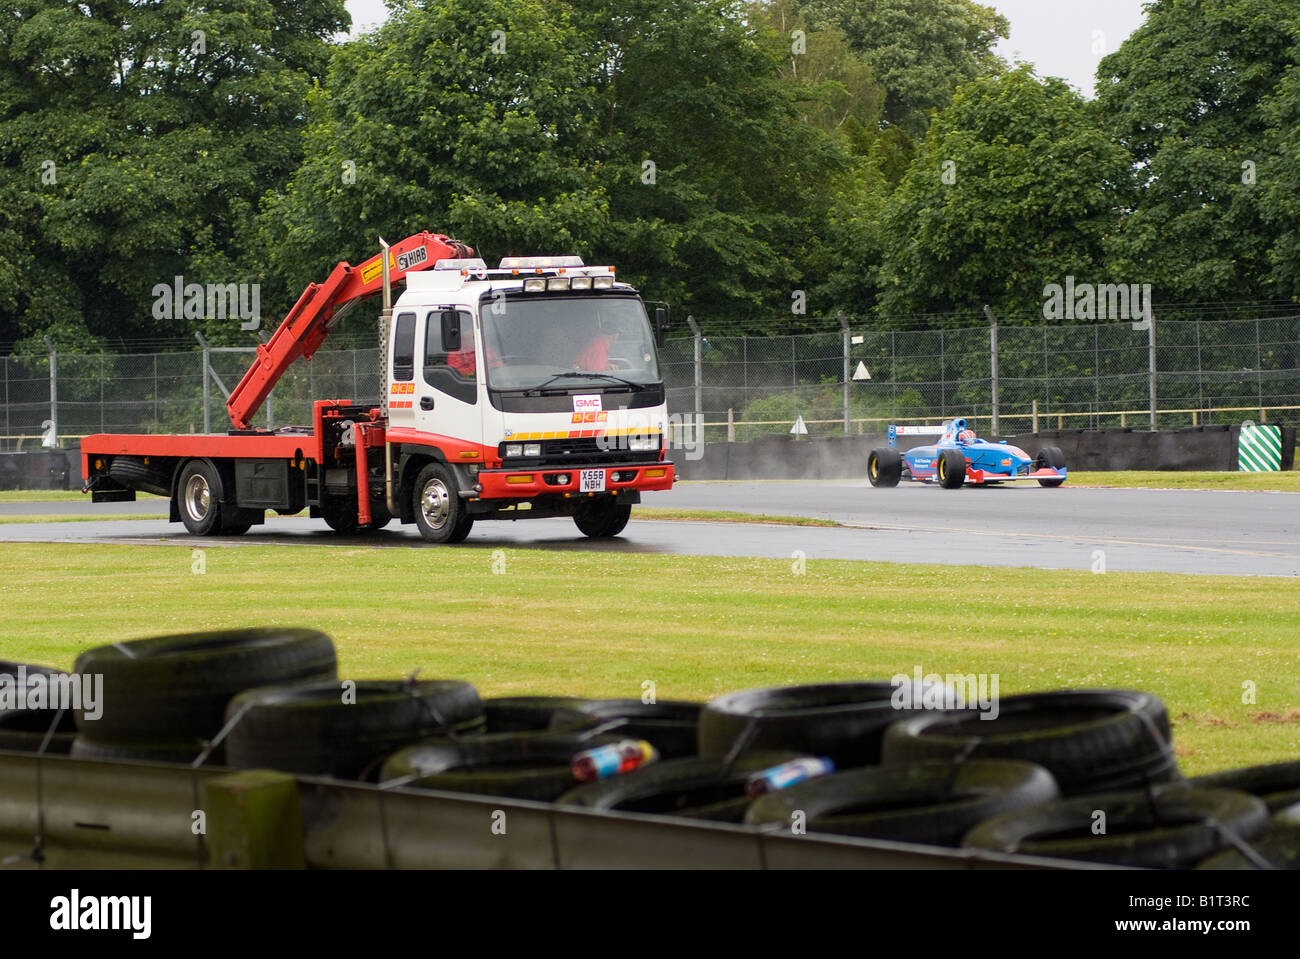 Formula palmer audi in old hall corner passes by recovery truck in pit road at oulton park motor racing circuit cheshire